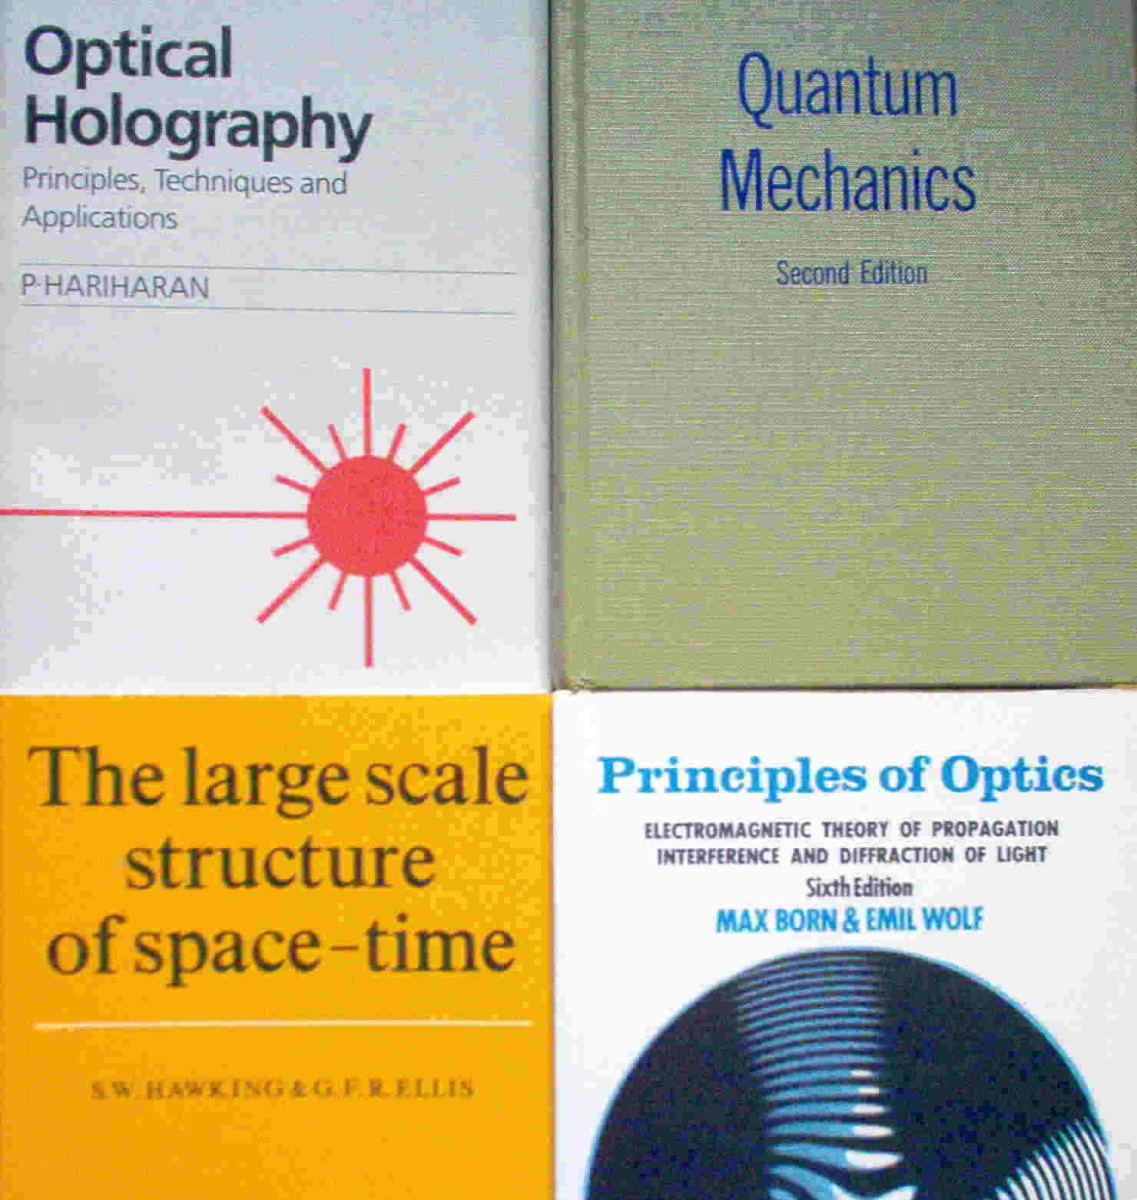 books from off the shelf